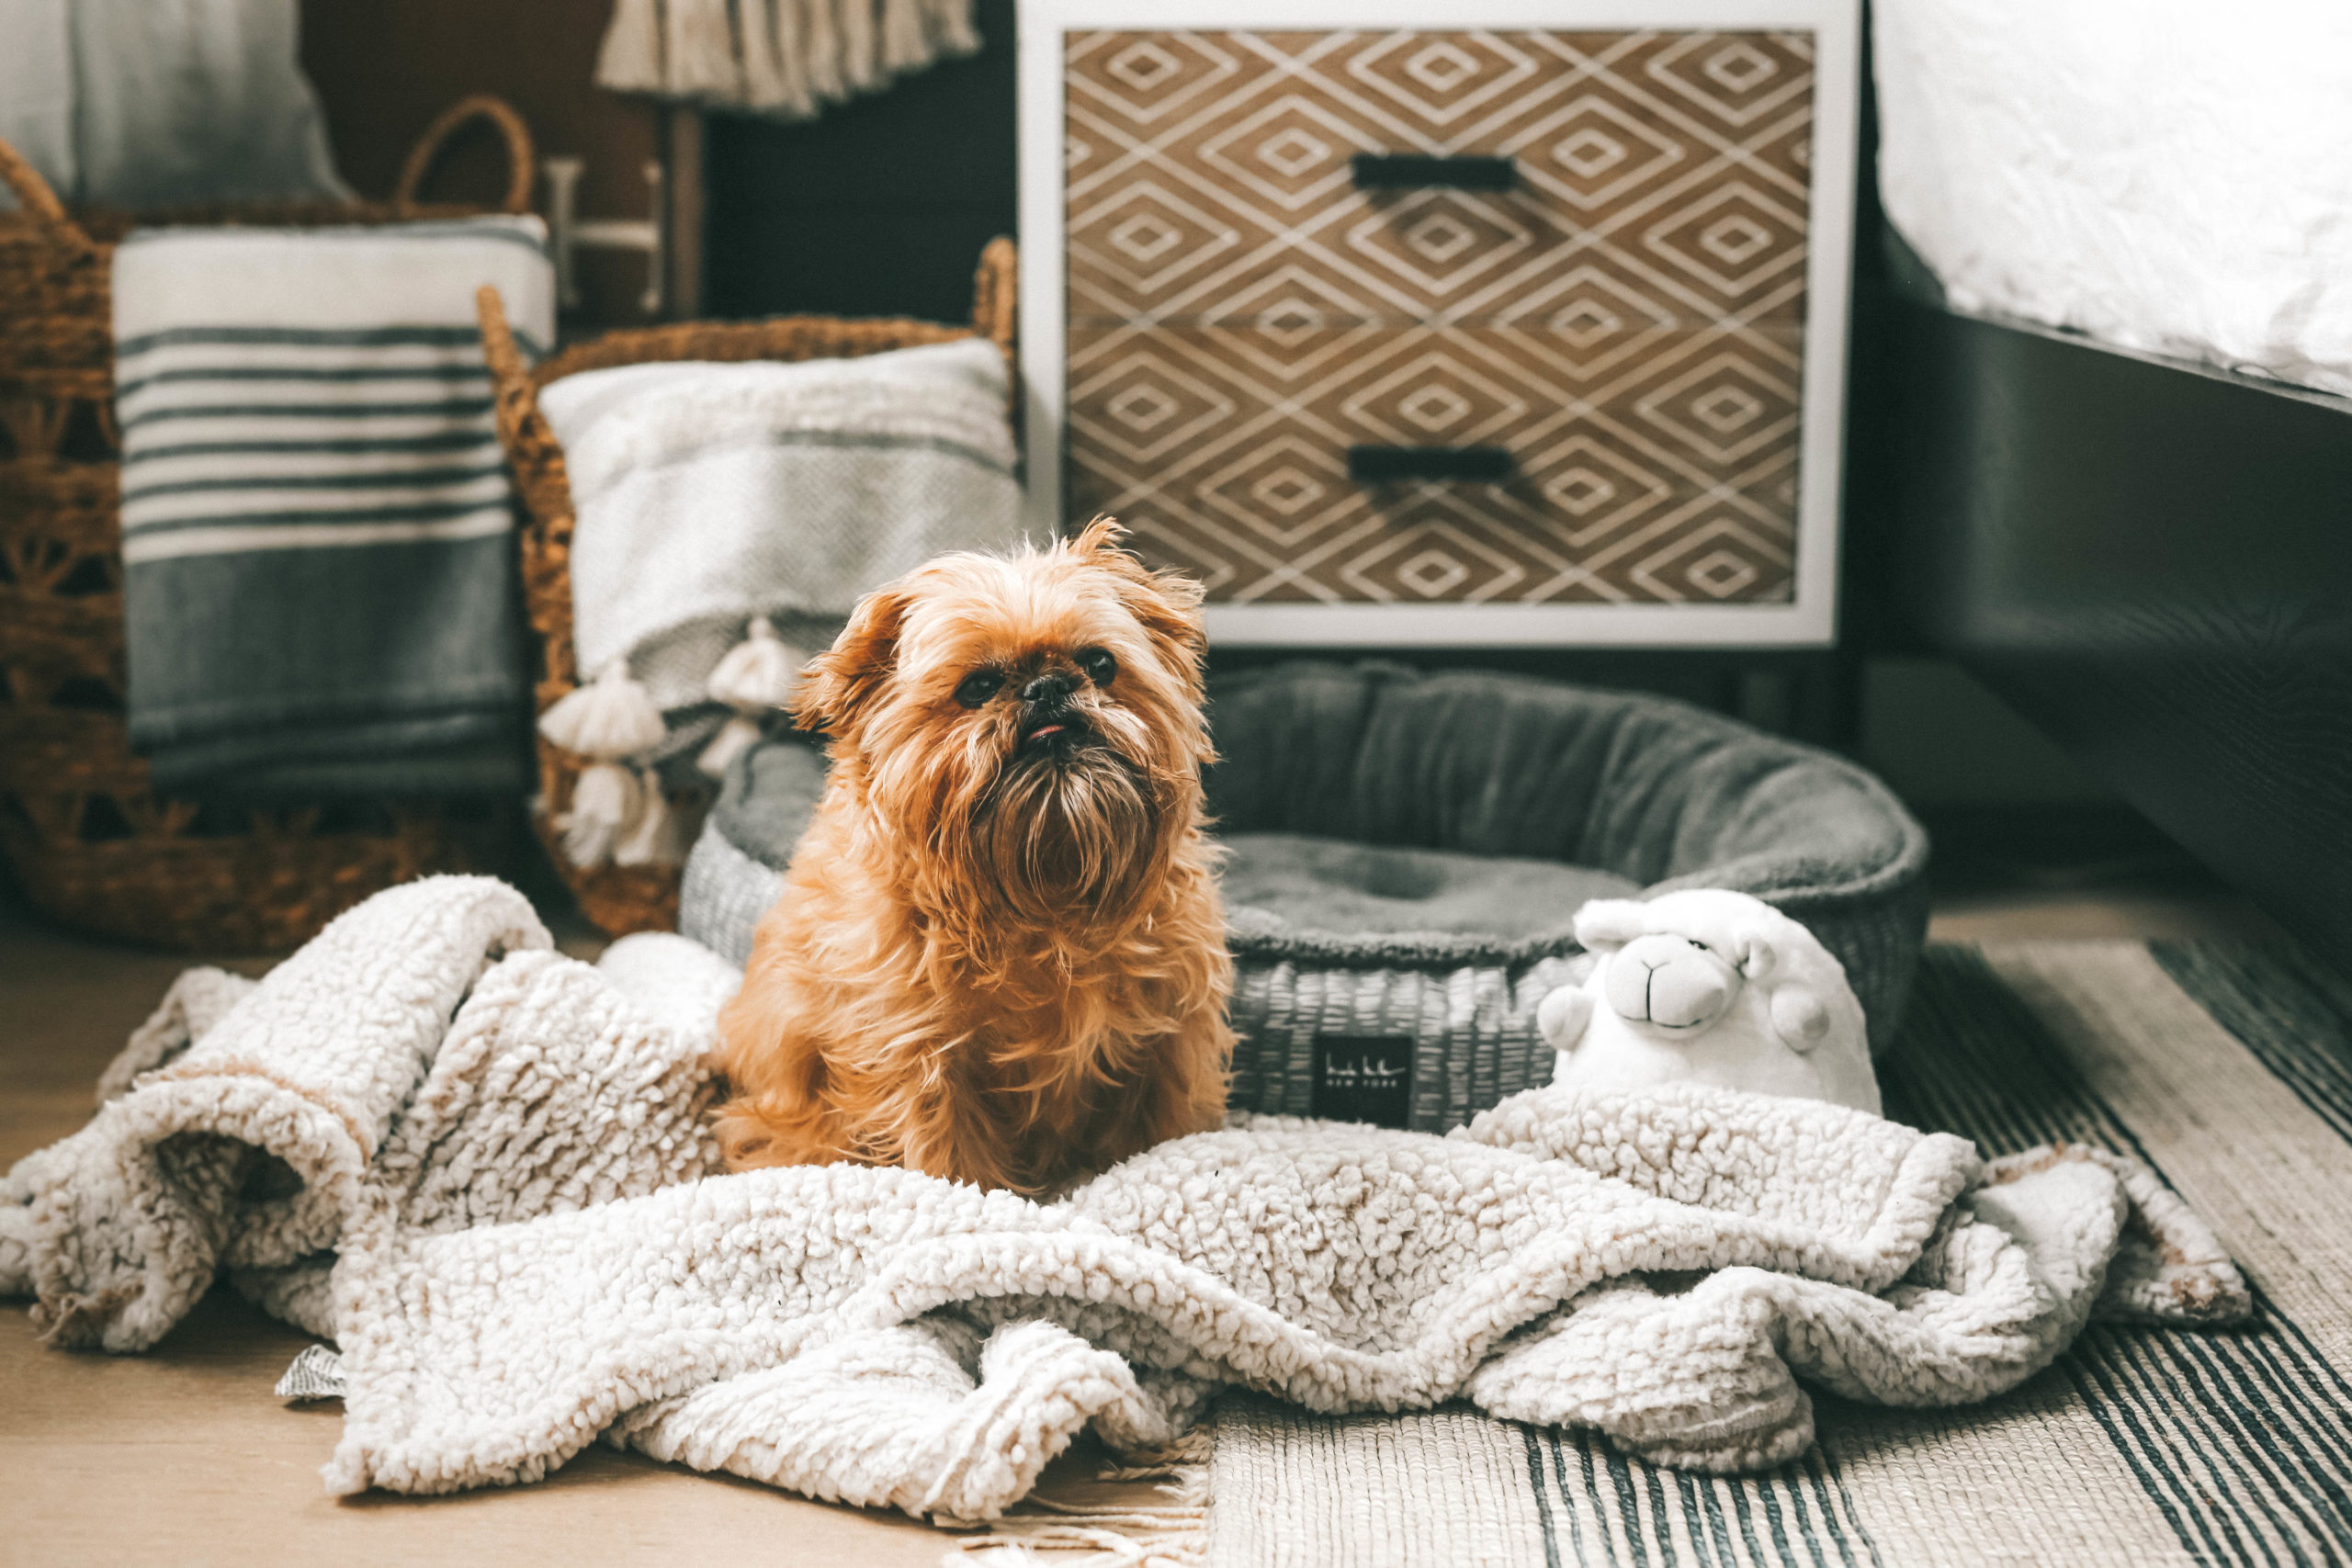 How to Pamper Your Pet by popular Nashville life and style blog, Dressed to Kill: image of a dog, sitting by a grey dog bed with a sheep toy next to some various dog signs from Tuesday Morning.